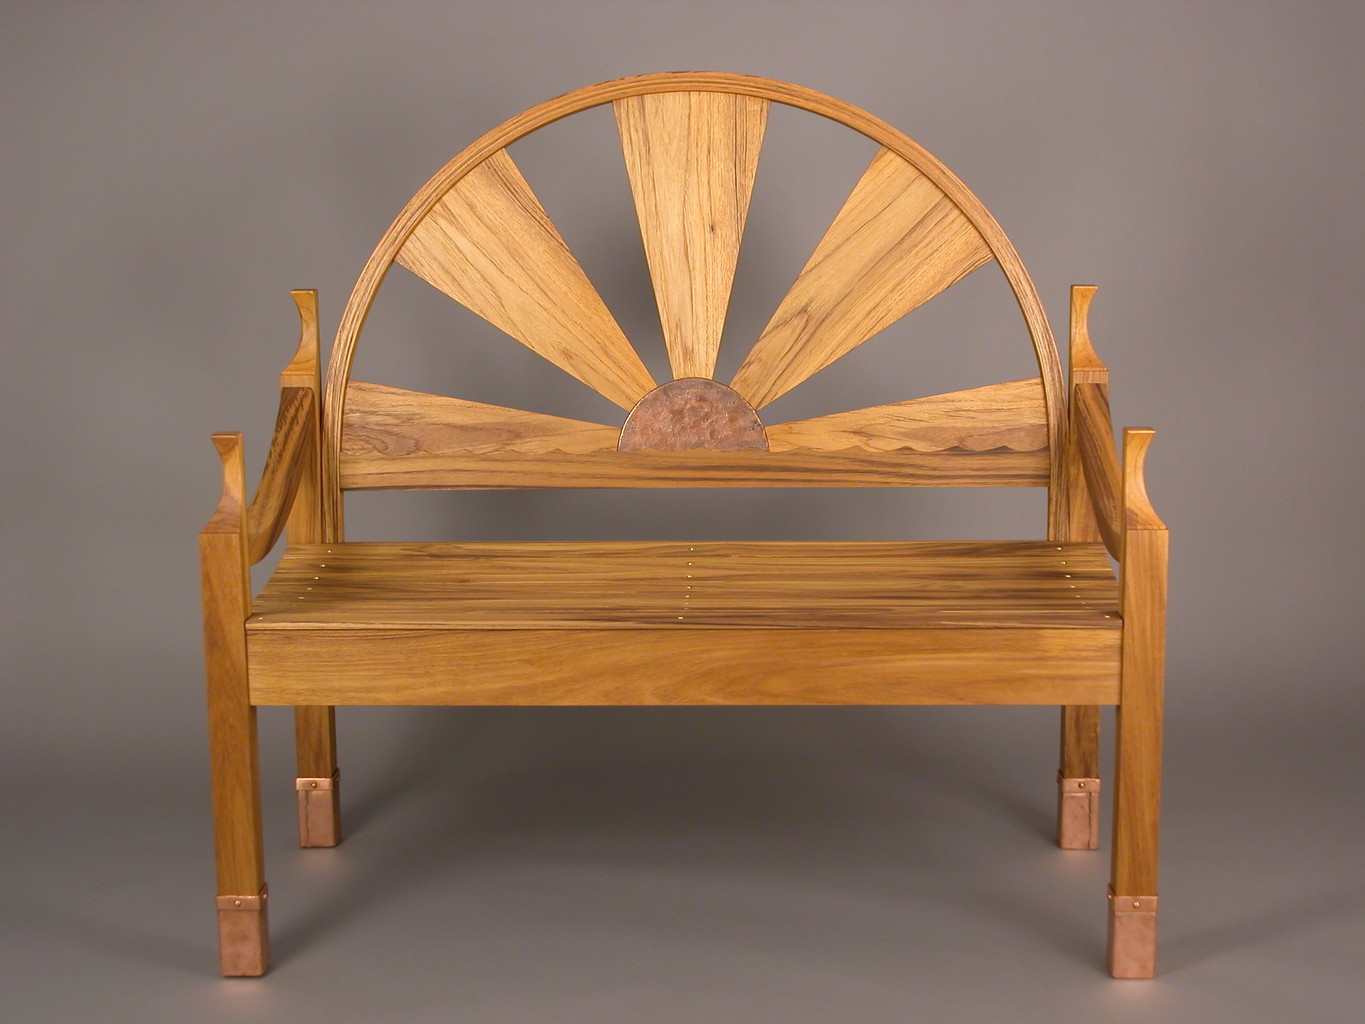 Bench Homemade wooden furniture